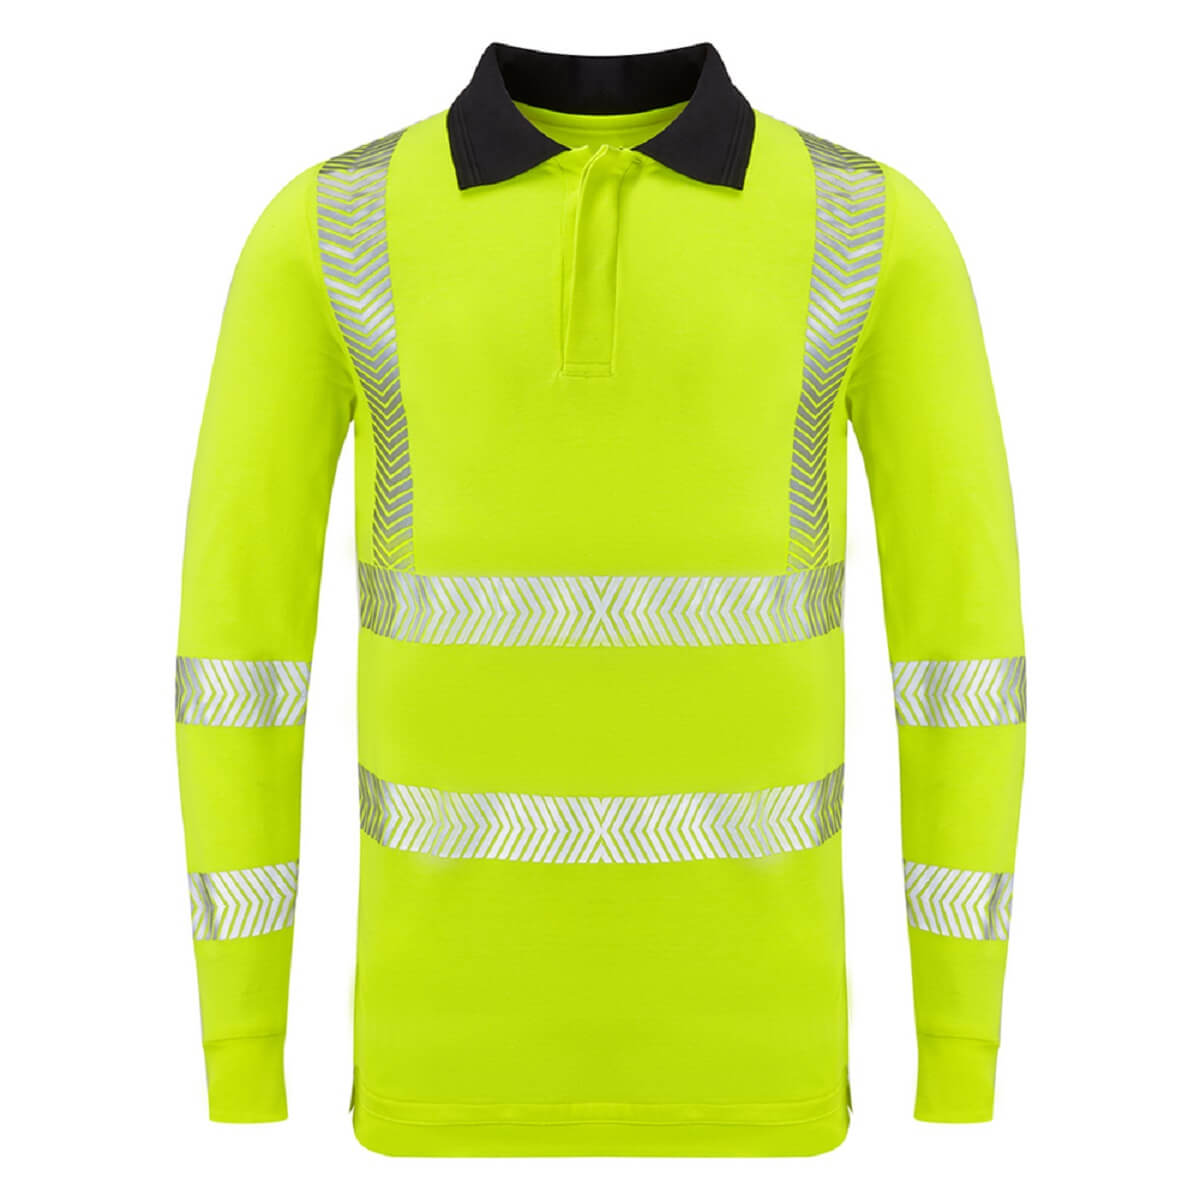 HAZTEC® Flame Resistant Anti-Static Long Sleeved Hi Vis Inherent Poloshirt Yellow Front